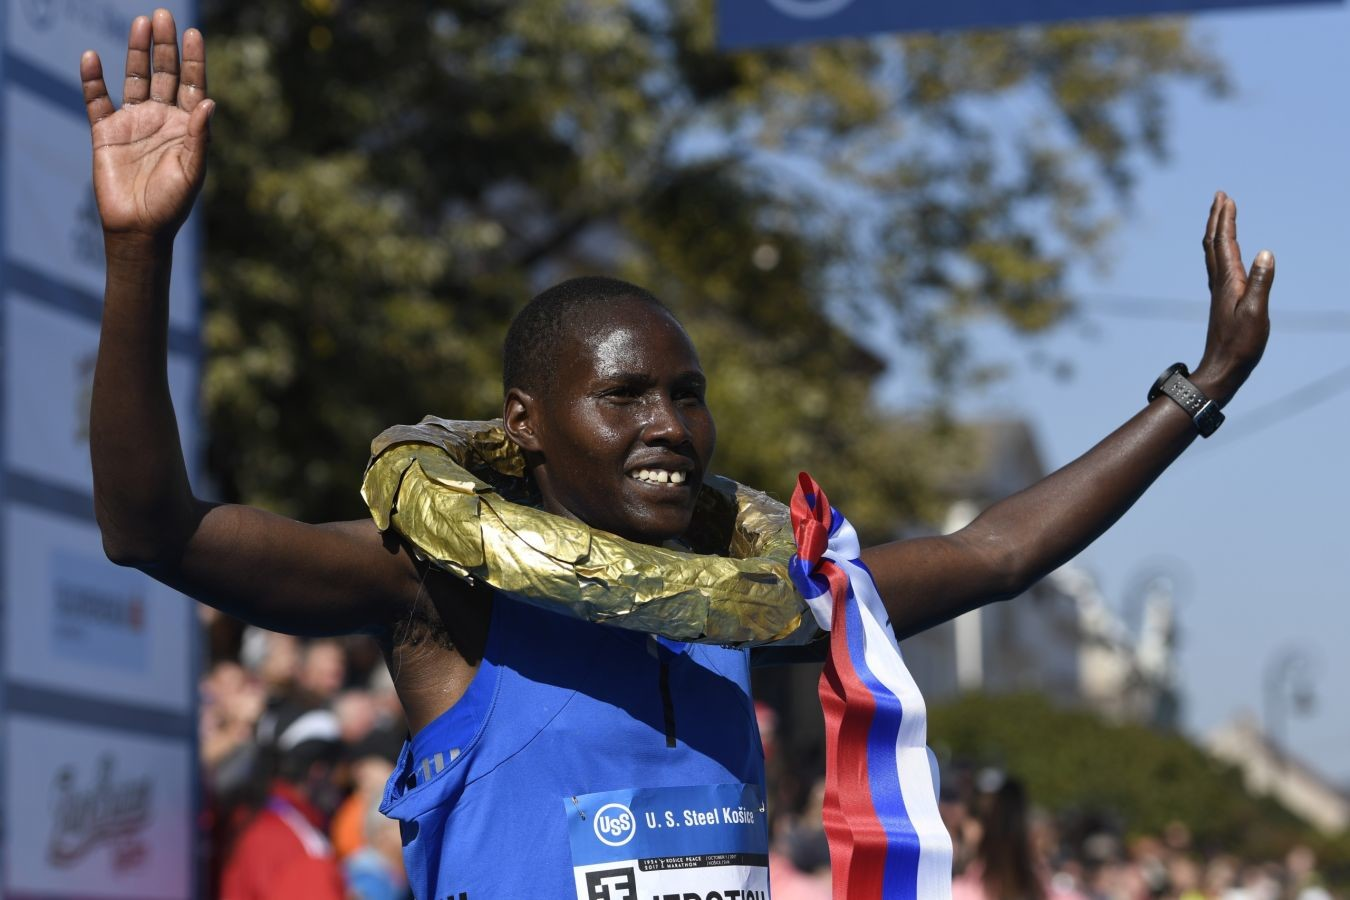 Kenyan team is set to run the oldest marathon in Europe, the Kosice Peace Marathon in Slovakia